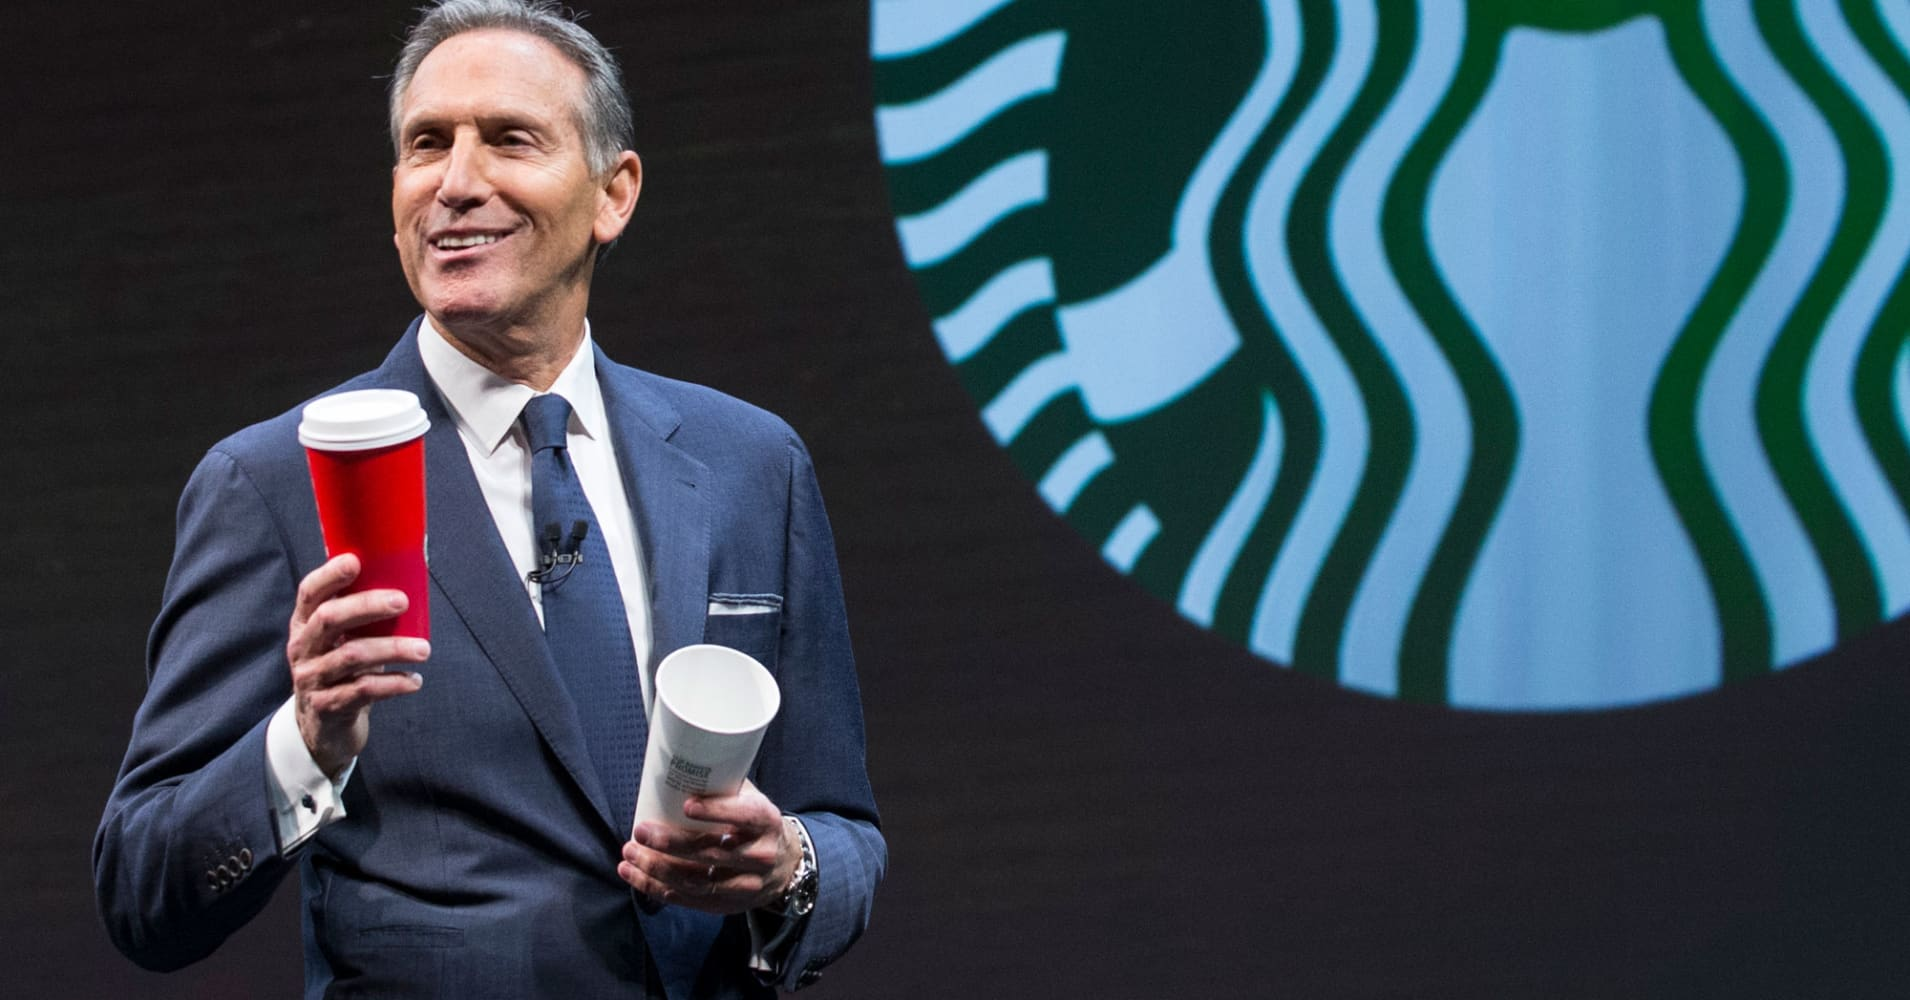 New Starbucks CEO needs to do one thing to keep shareholders happy, top analyst says